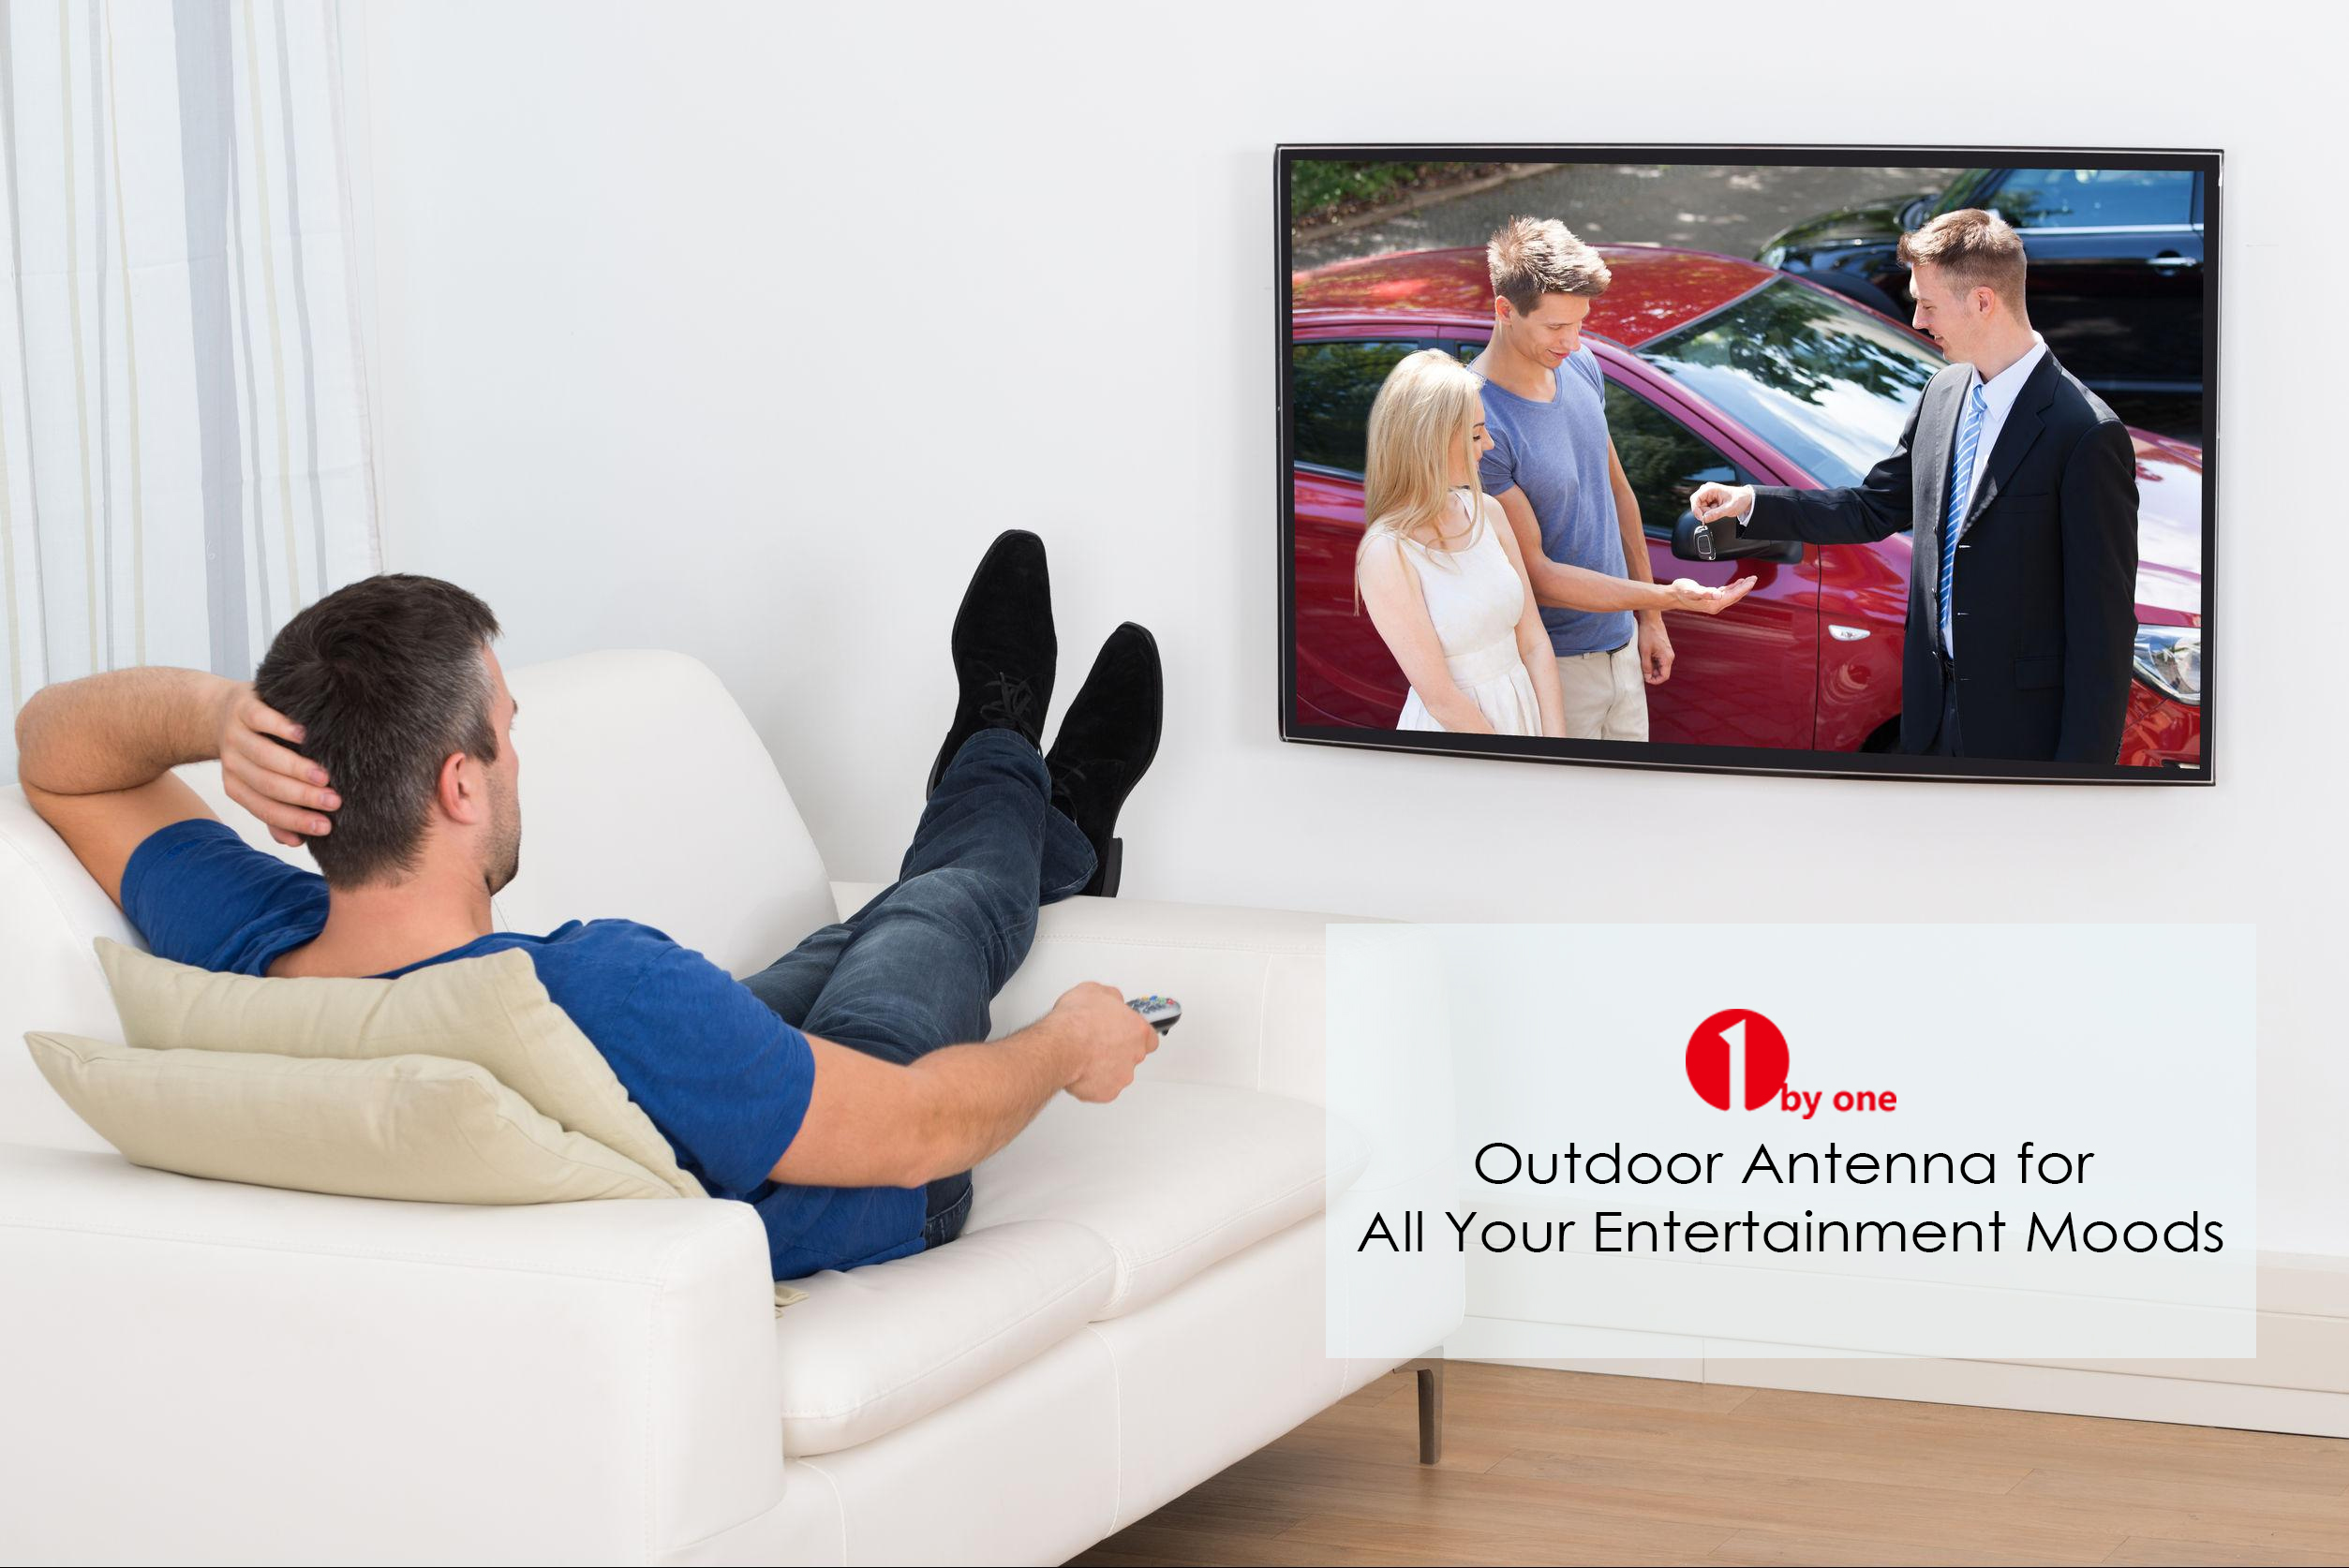 What Should You Keep in Mind While Buying Outdoor Antenna Online?